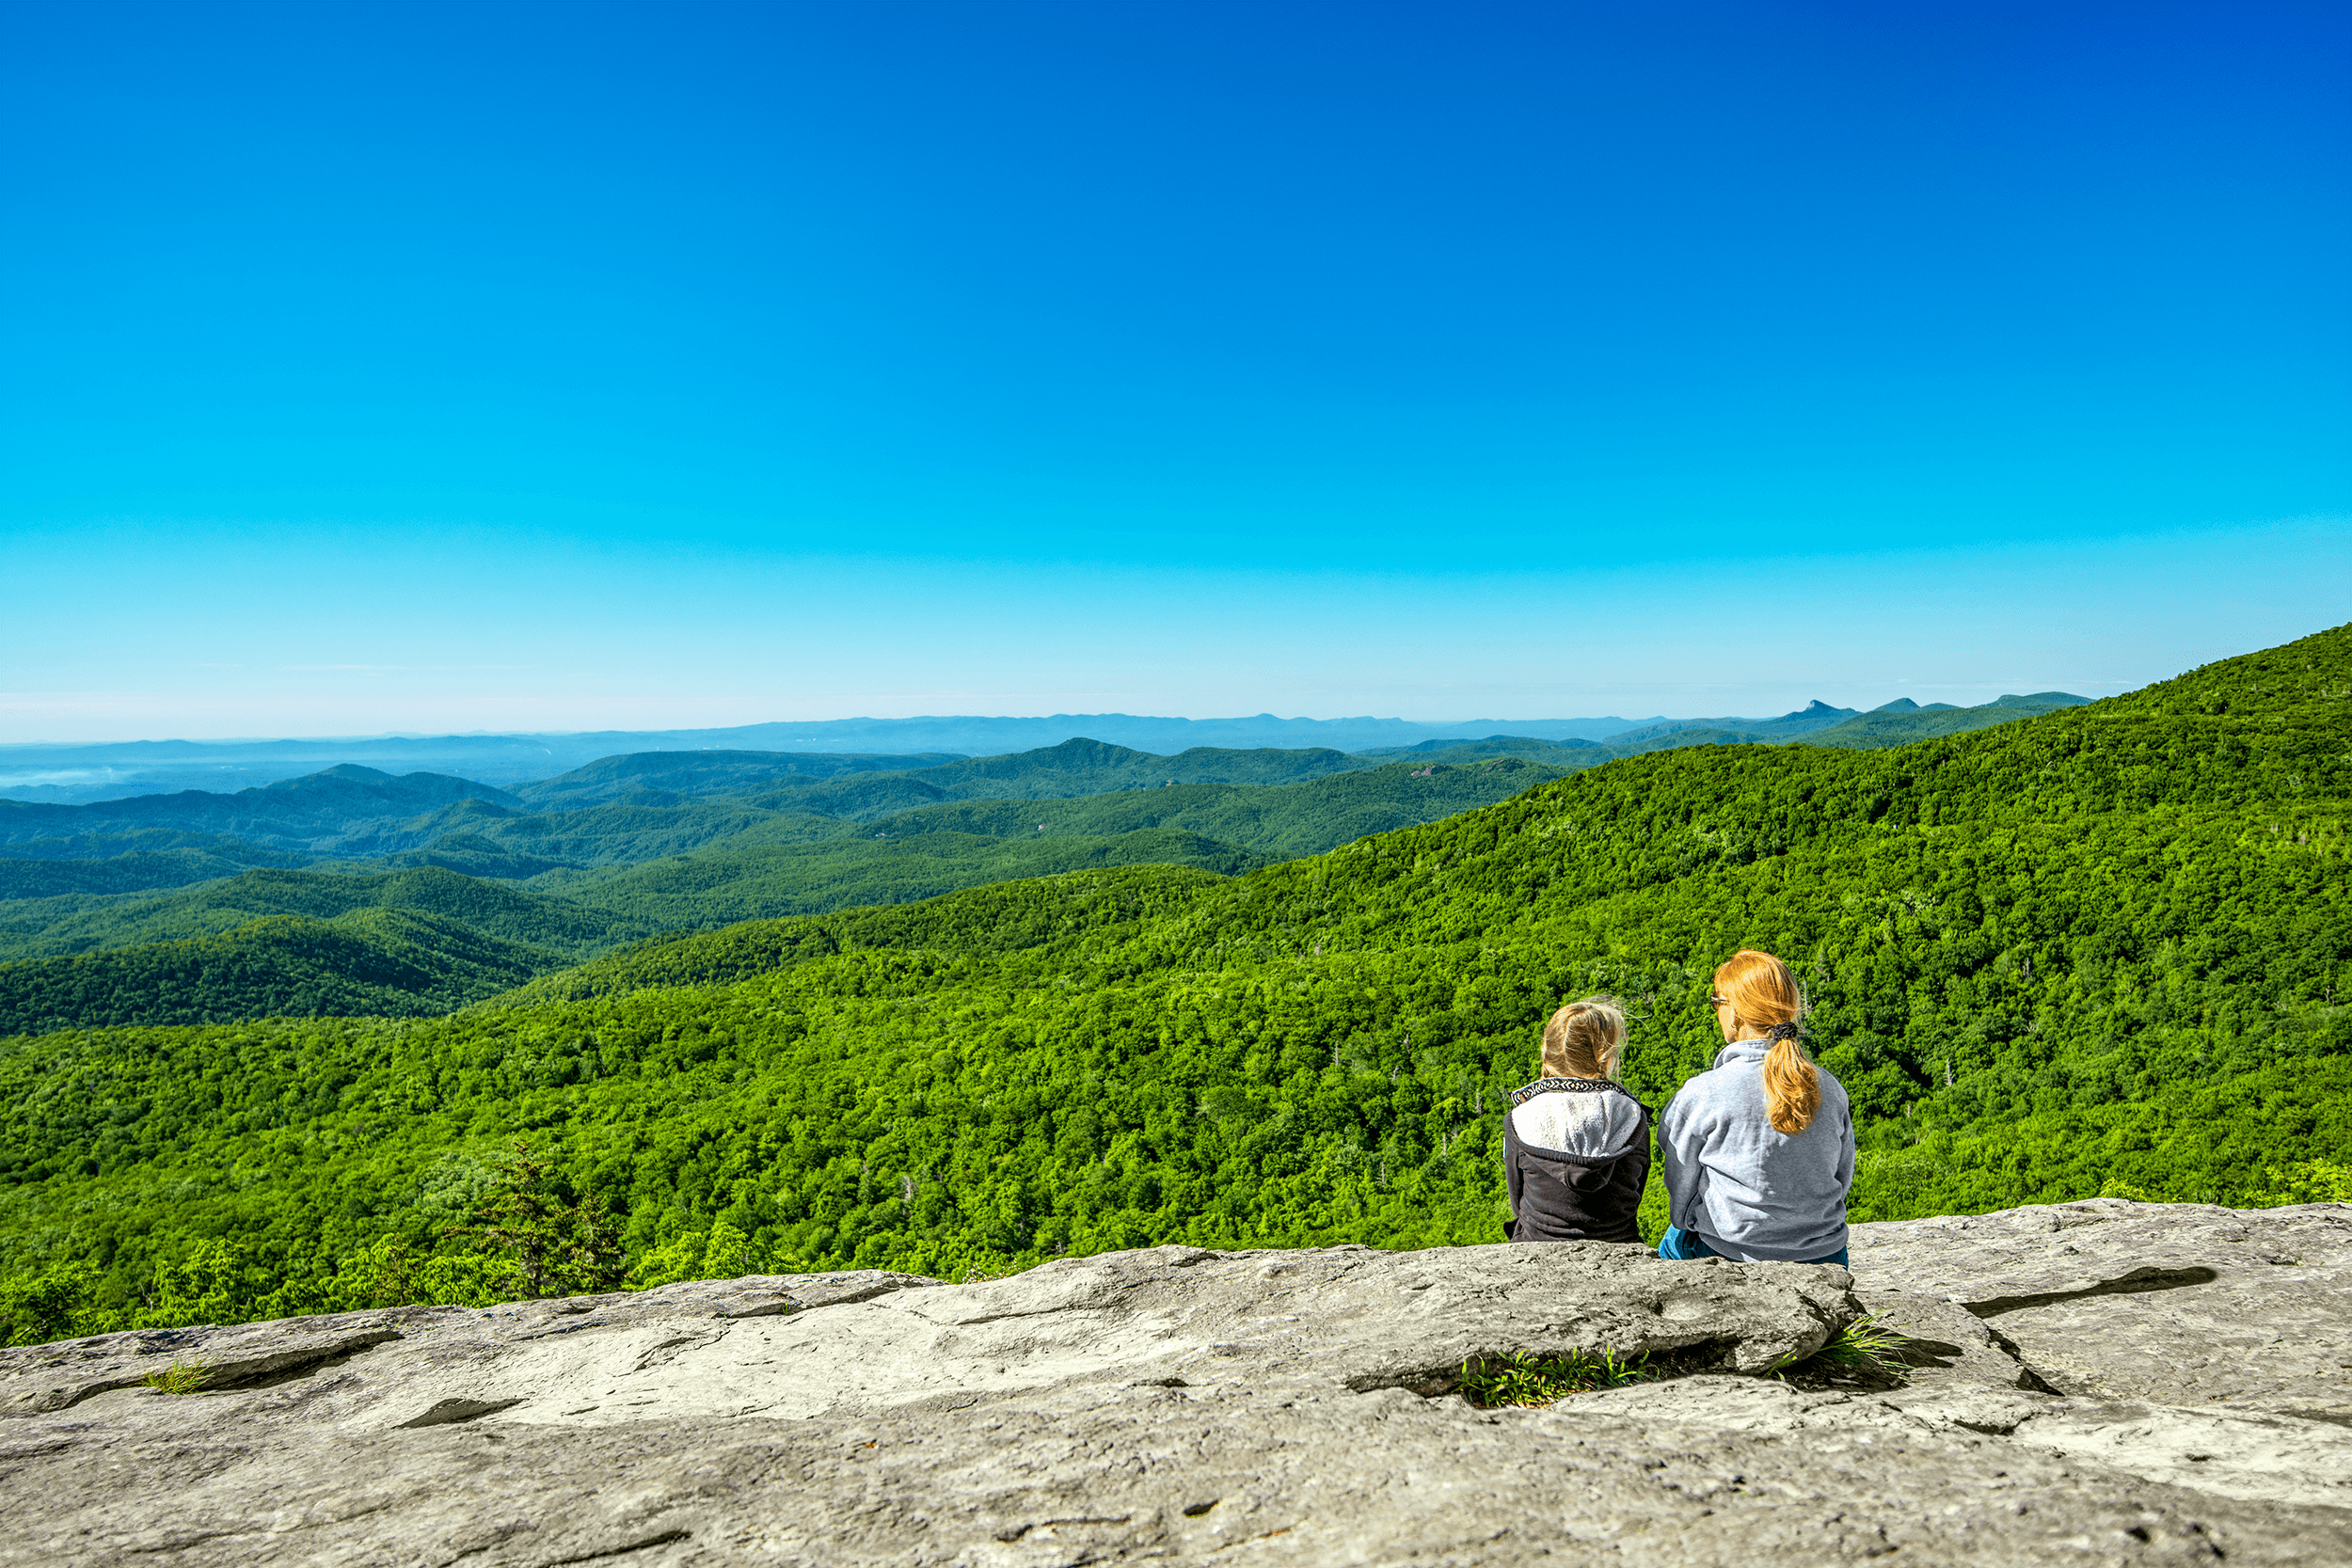 After a short easy to moderate hike, the  Beacon Heights Trail  opens up to the south-facing rock formation. The surface of the rock is smooth and offers a perfect place for a nice picnic with incredible long-range views as a backdrop.